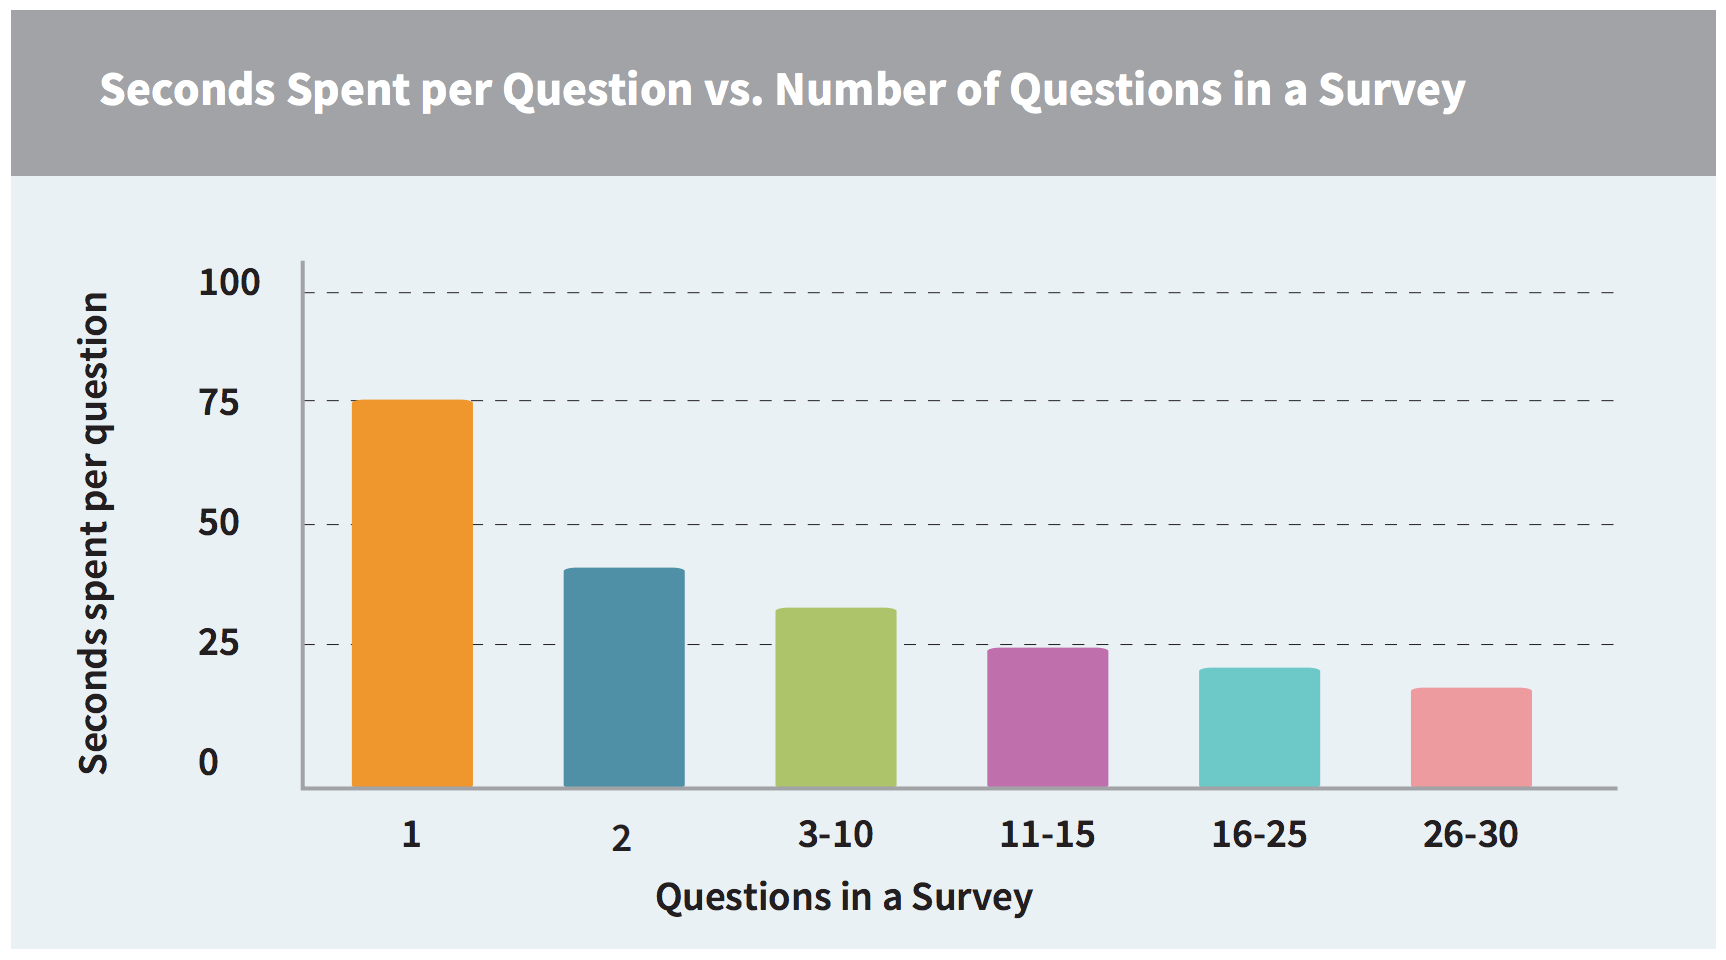 number survey questions versus time spent answering